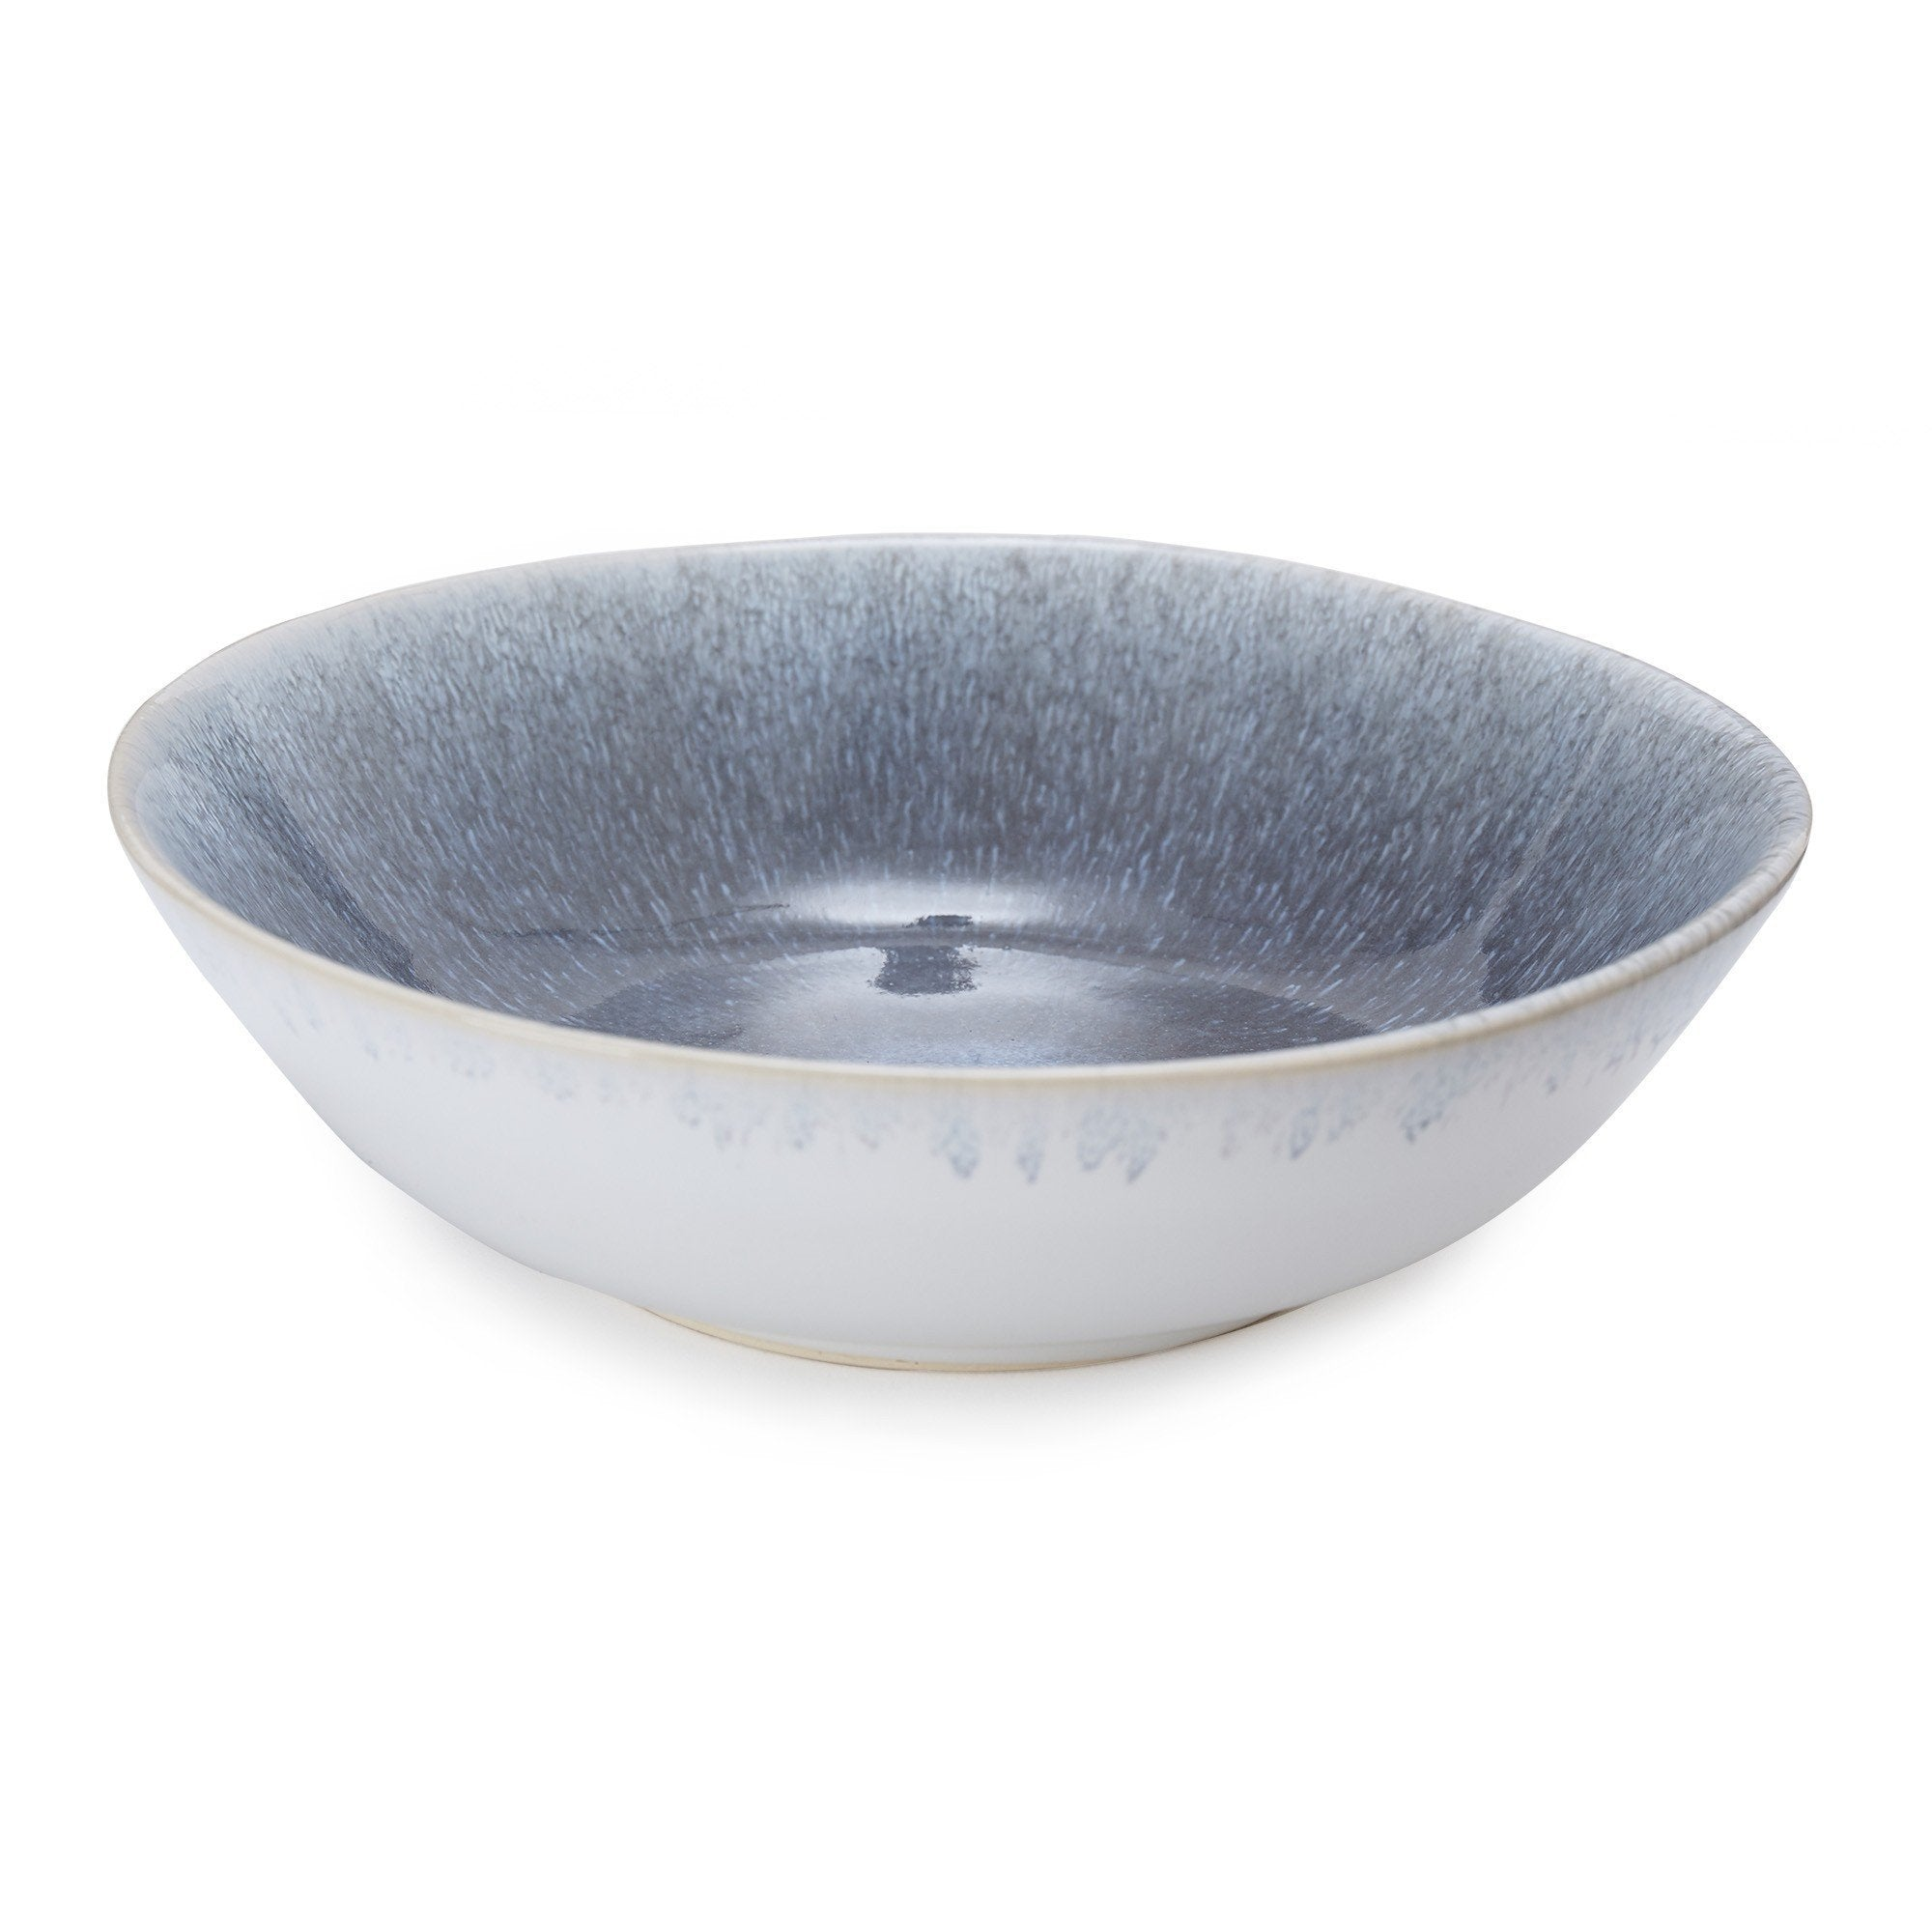 Caima Bowl Set blue grey, 100% ceramic